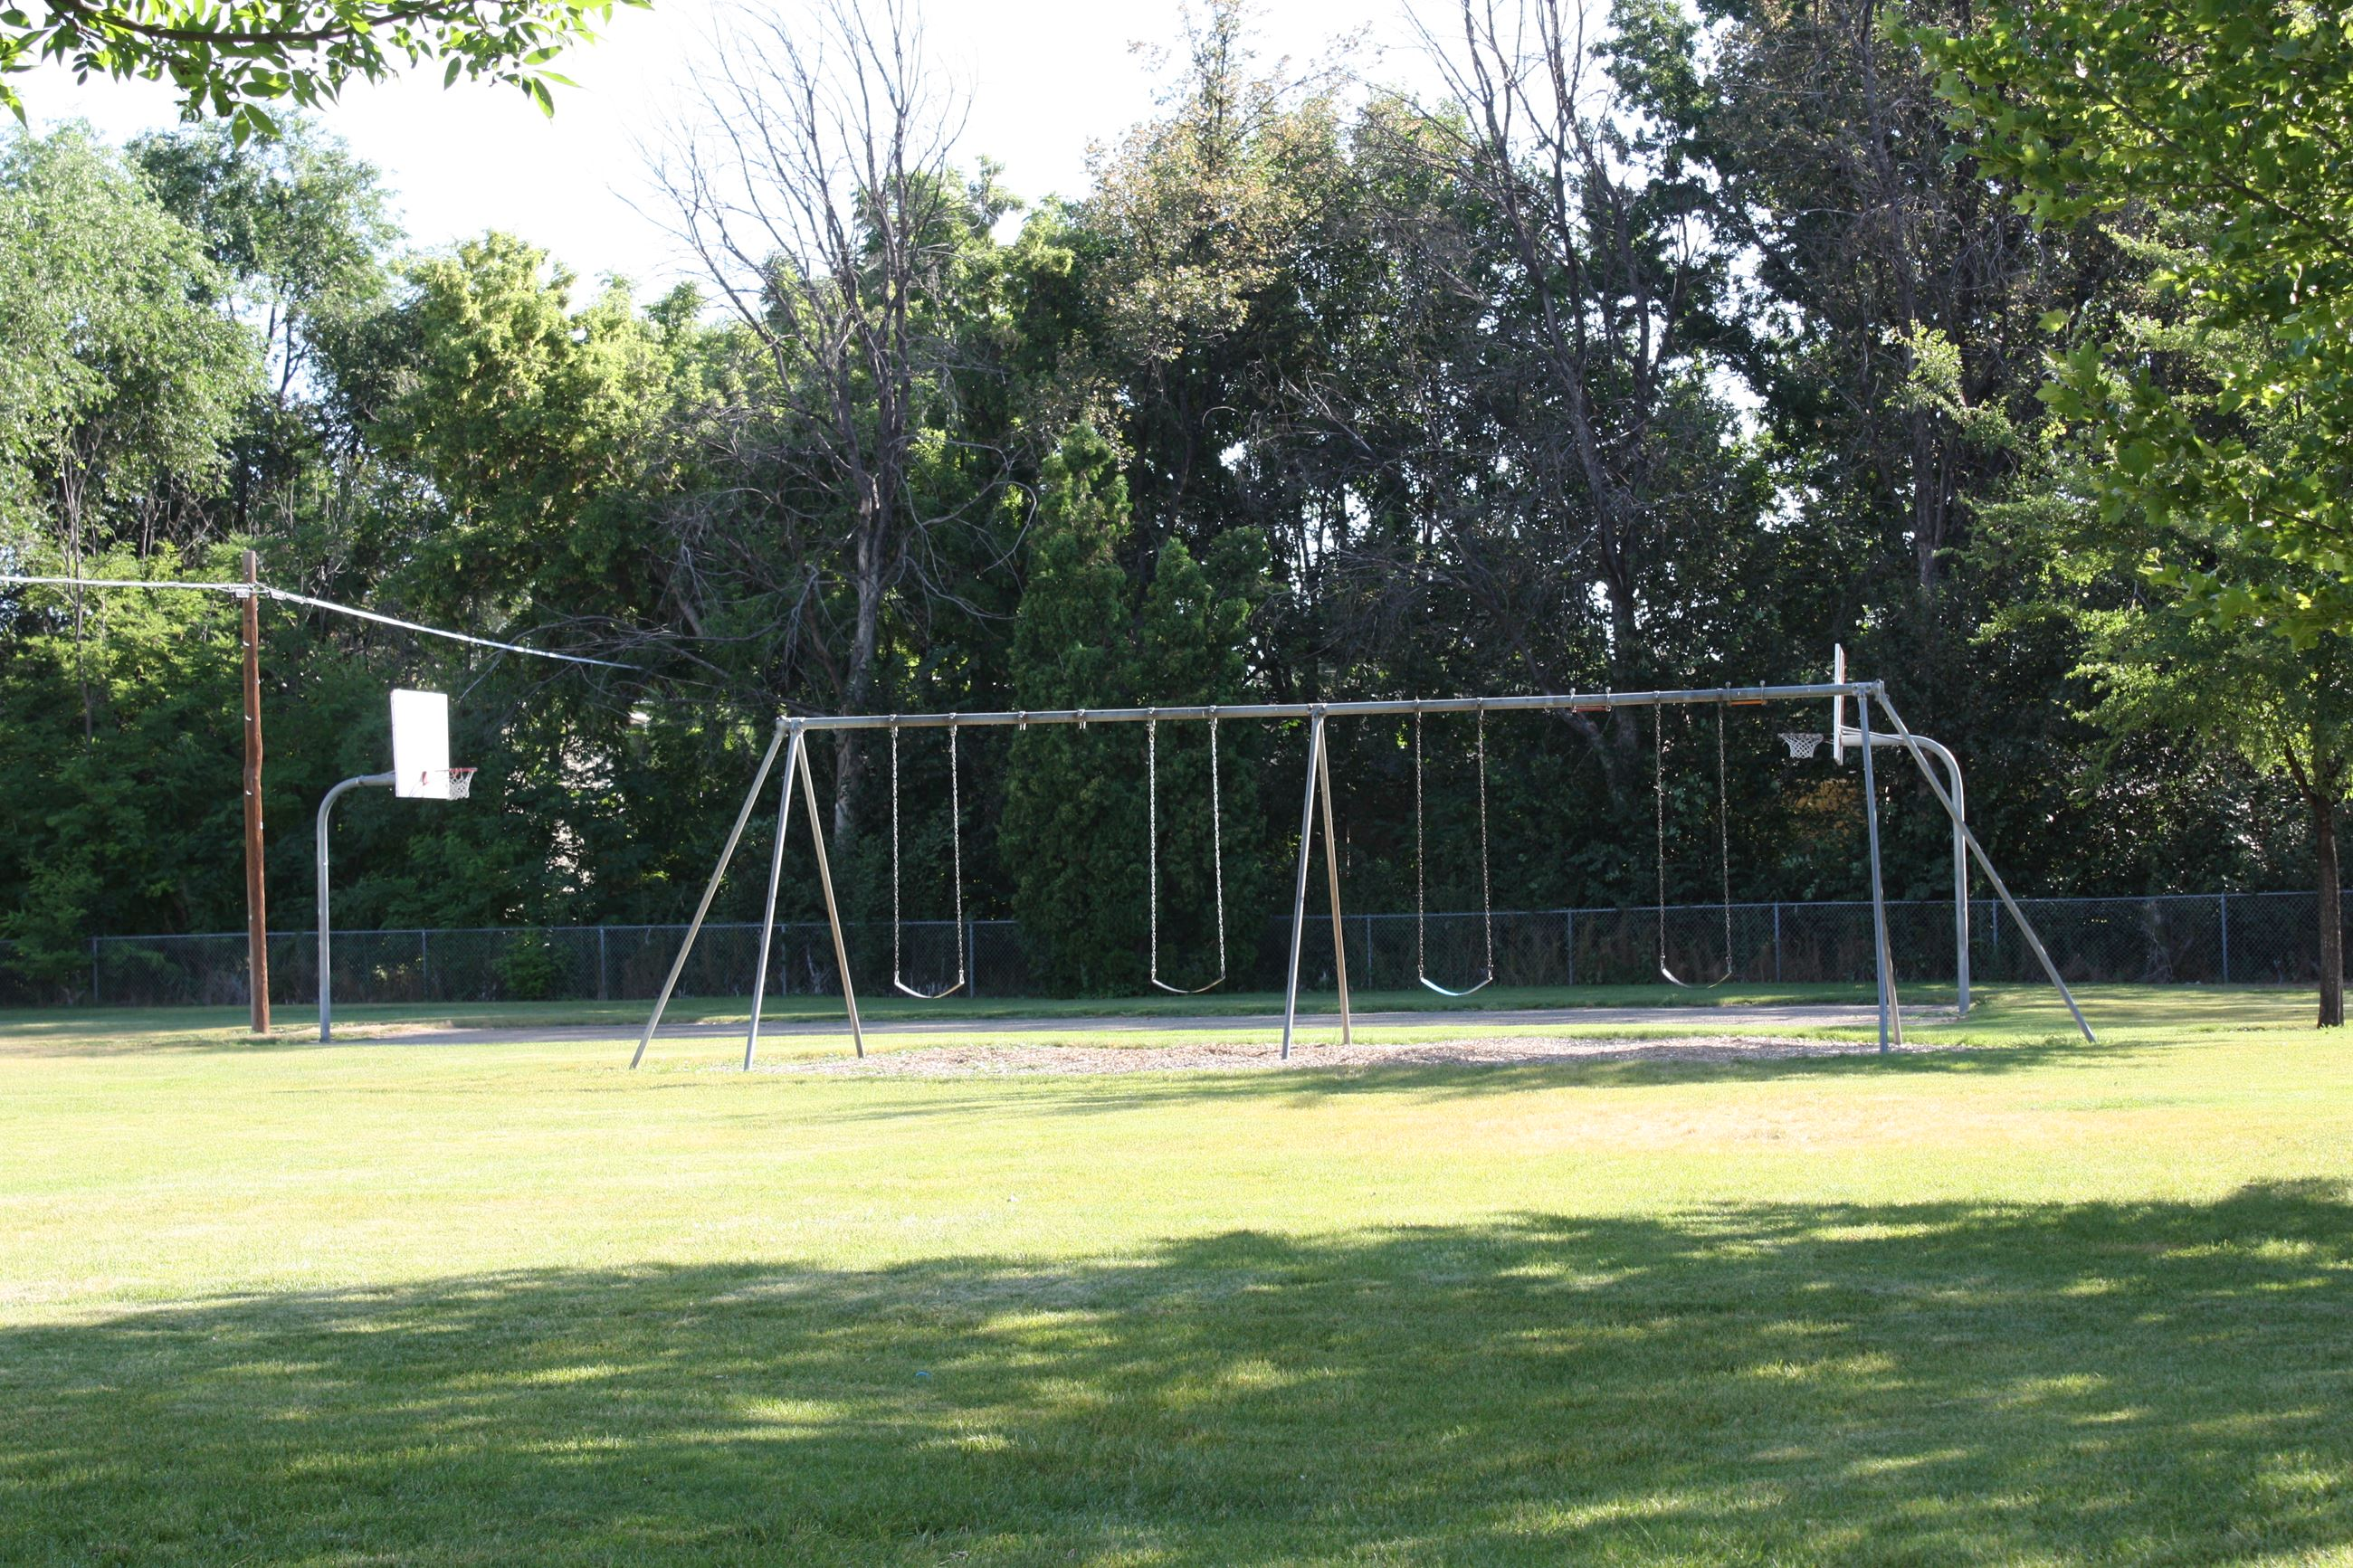 Swings and basketball courts at Indian Creek Park